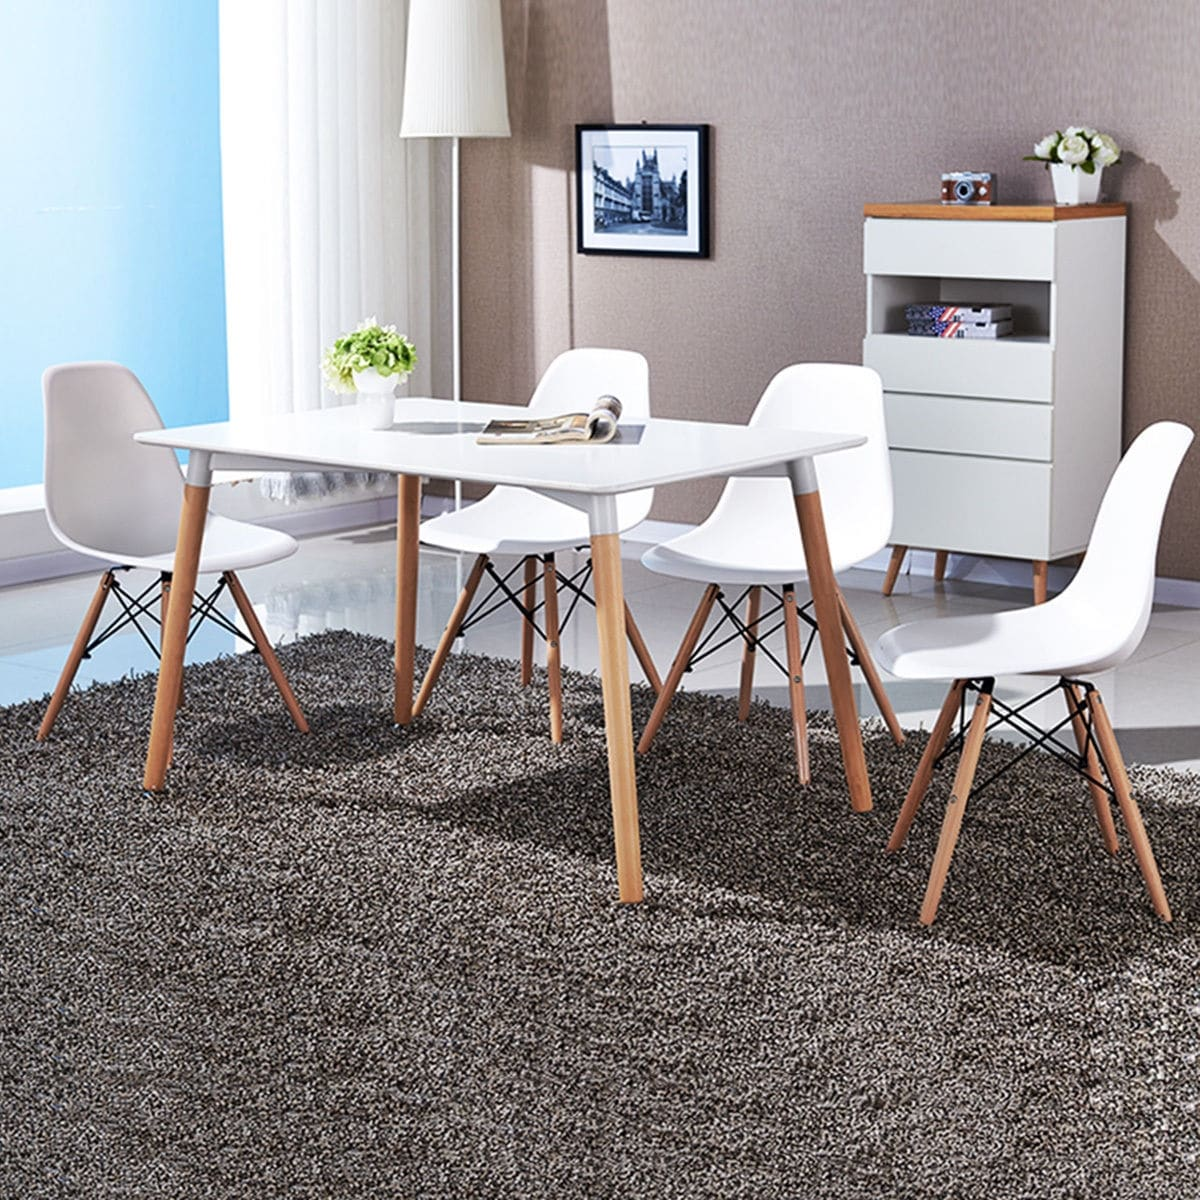 Modern Table And Chairs Costway Set Of 4 Mid Century Modern Style Dsw Dining Side Chair Wood Leg